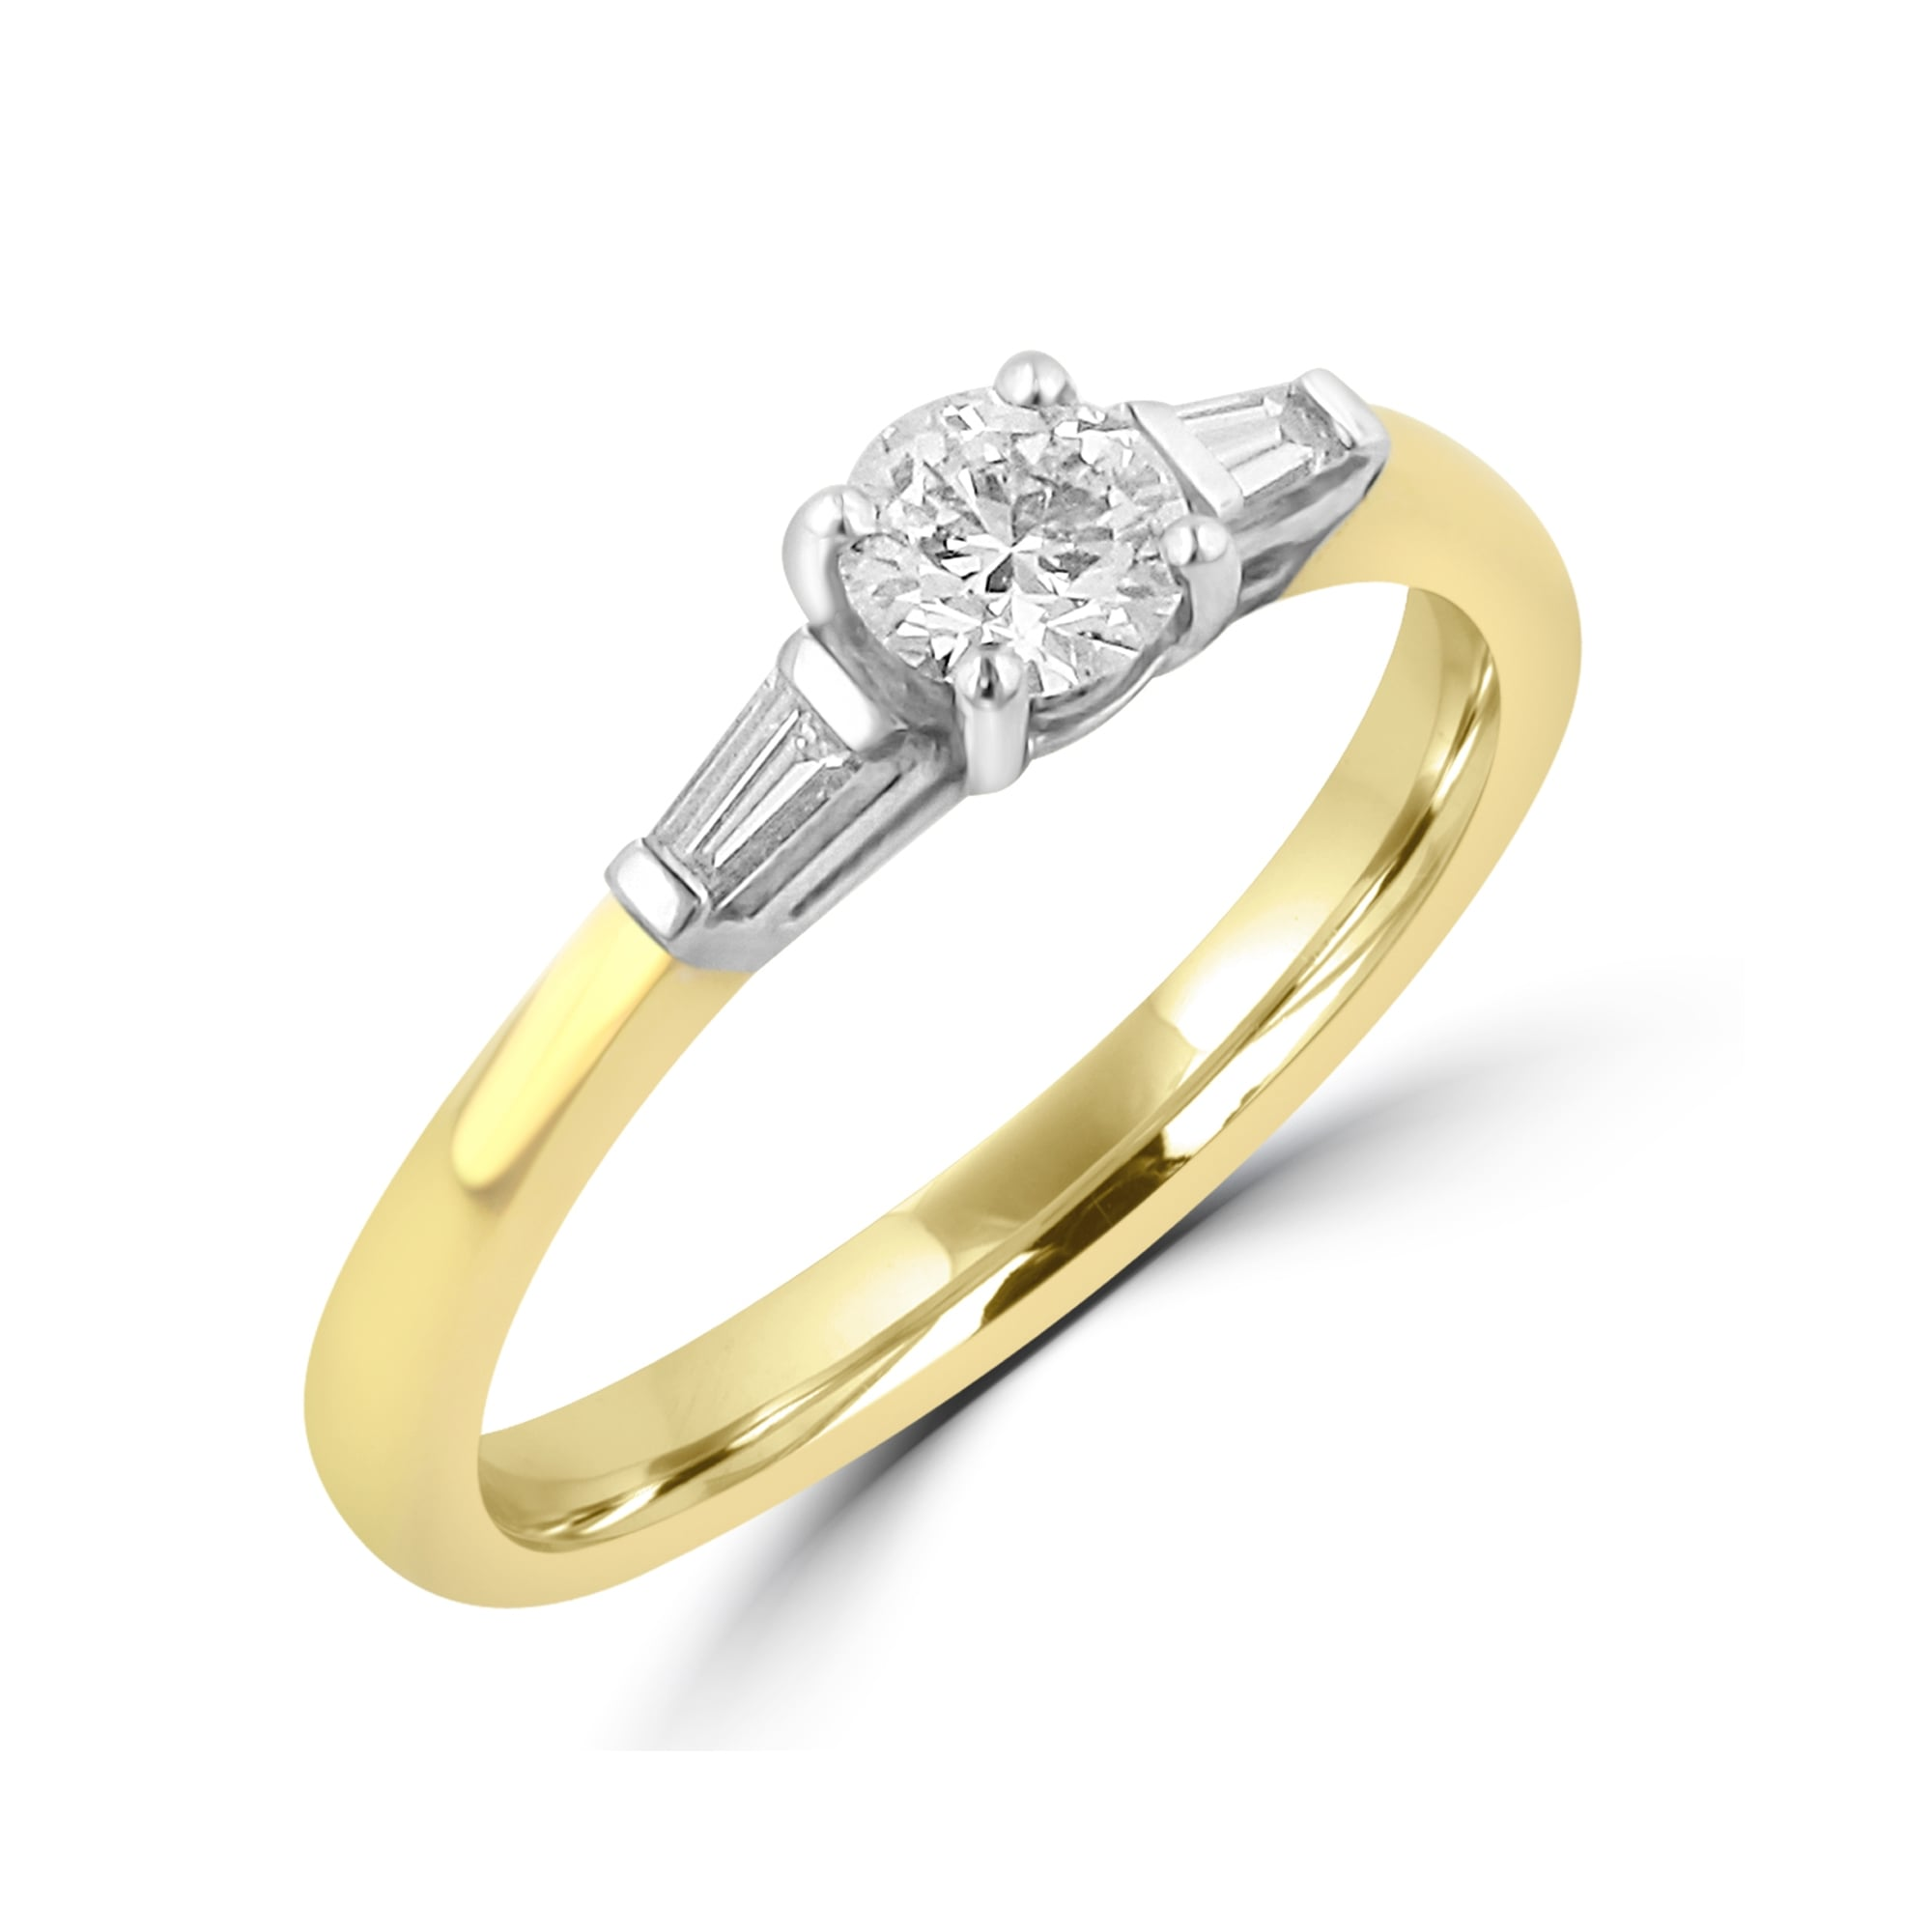 Round Baguette Diamond Engagement Ring 18ct Yellow Gold